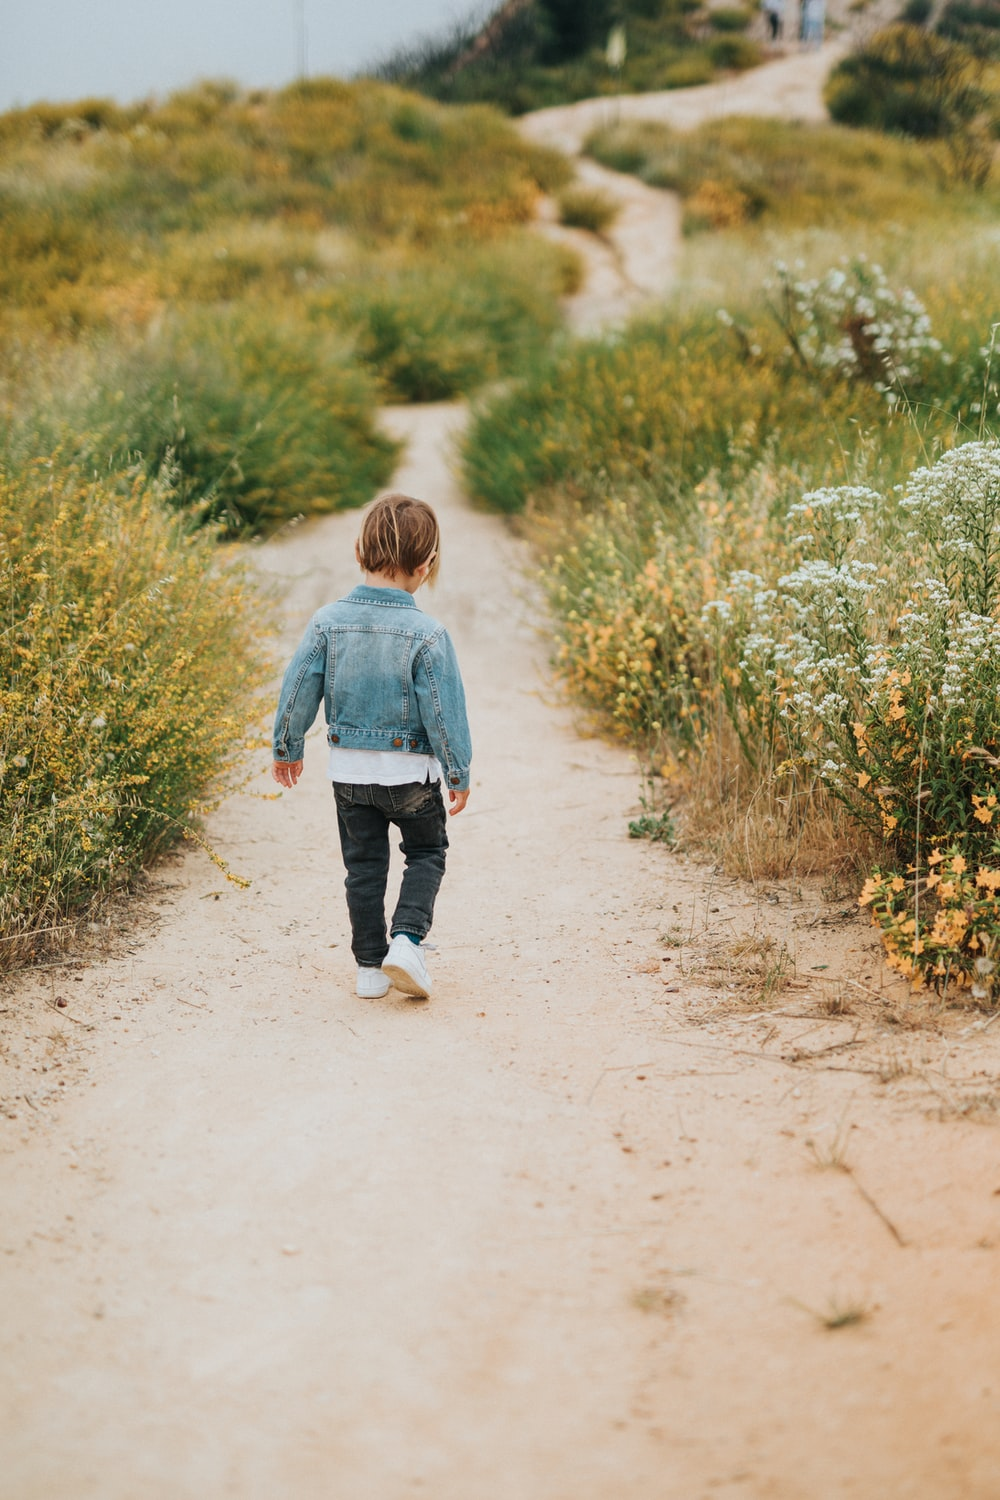 boy in blue sweater walking on dirt road during daytime